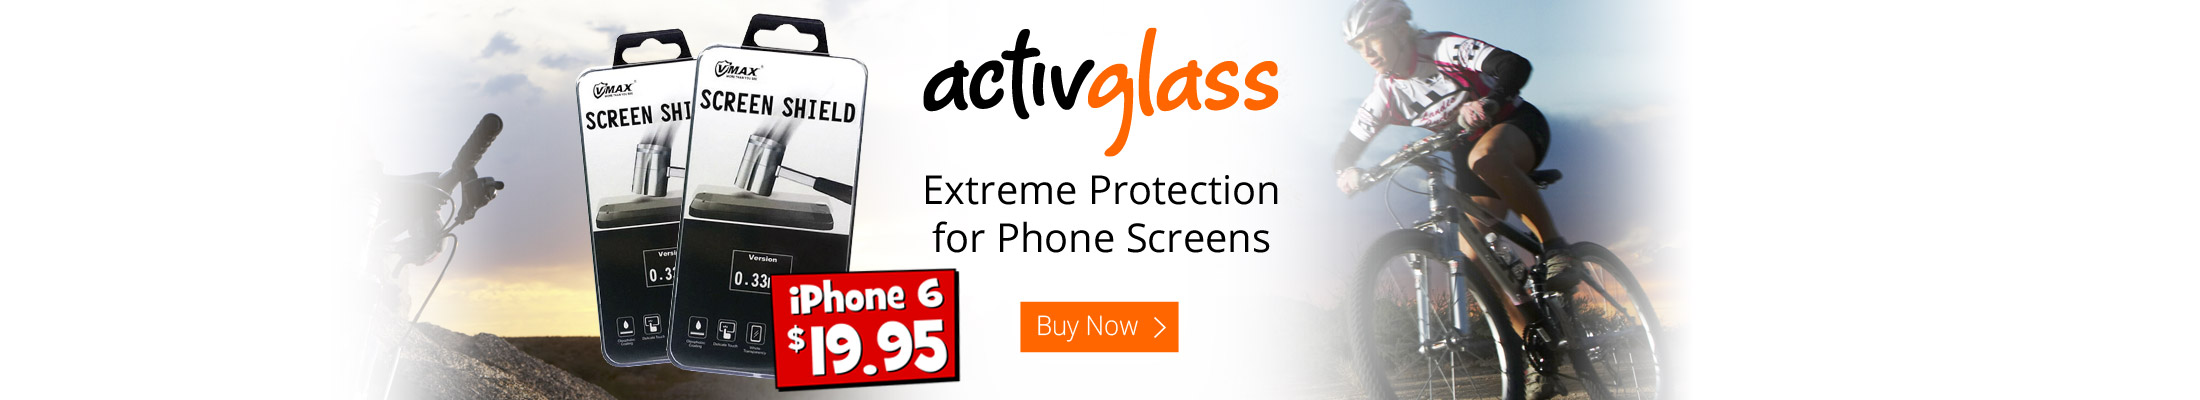 iPhone 6 Tempered Glass Screen Protection